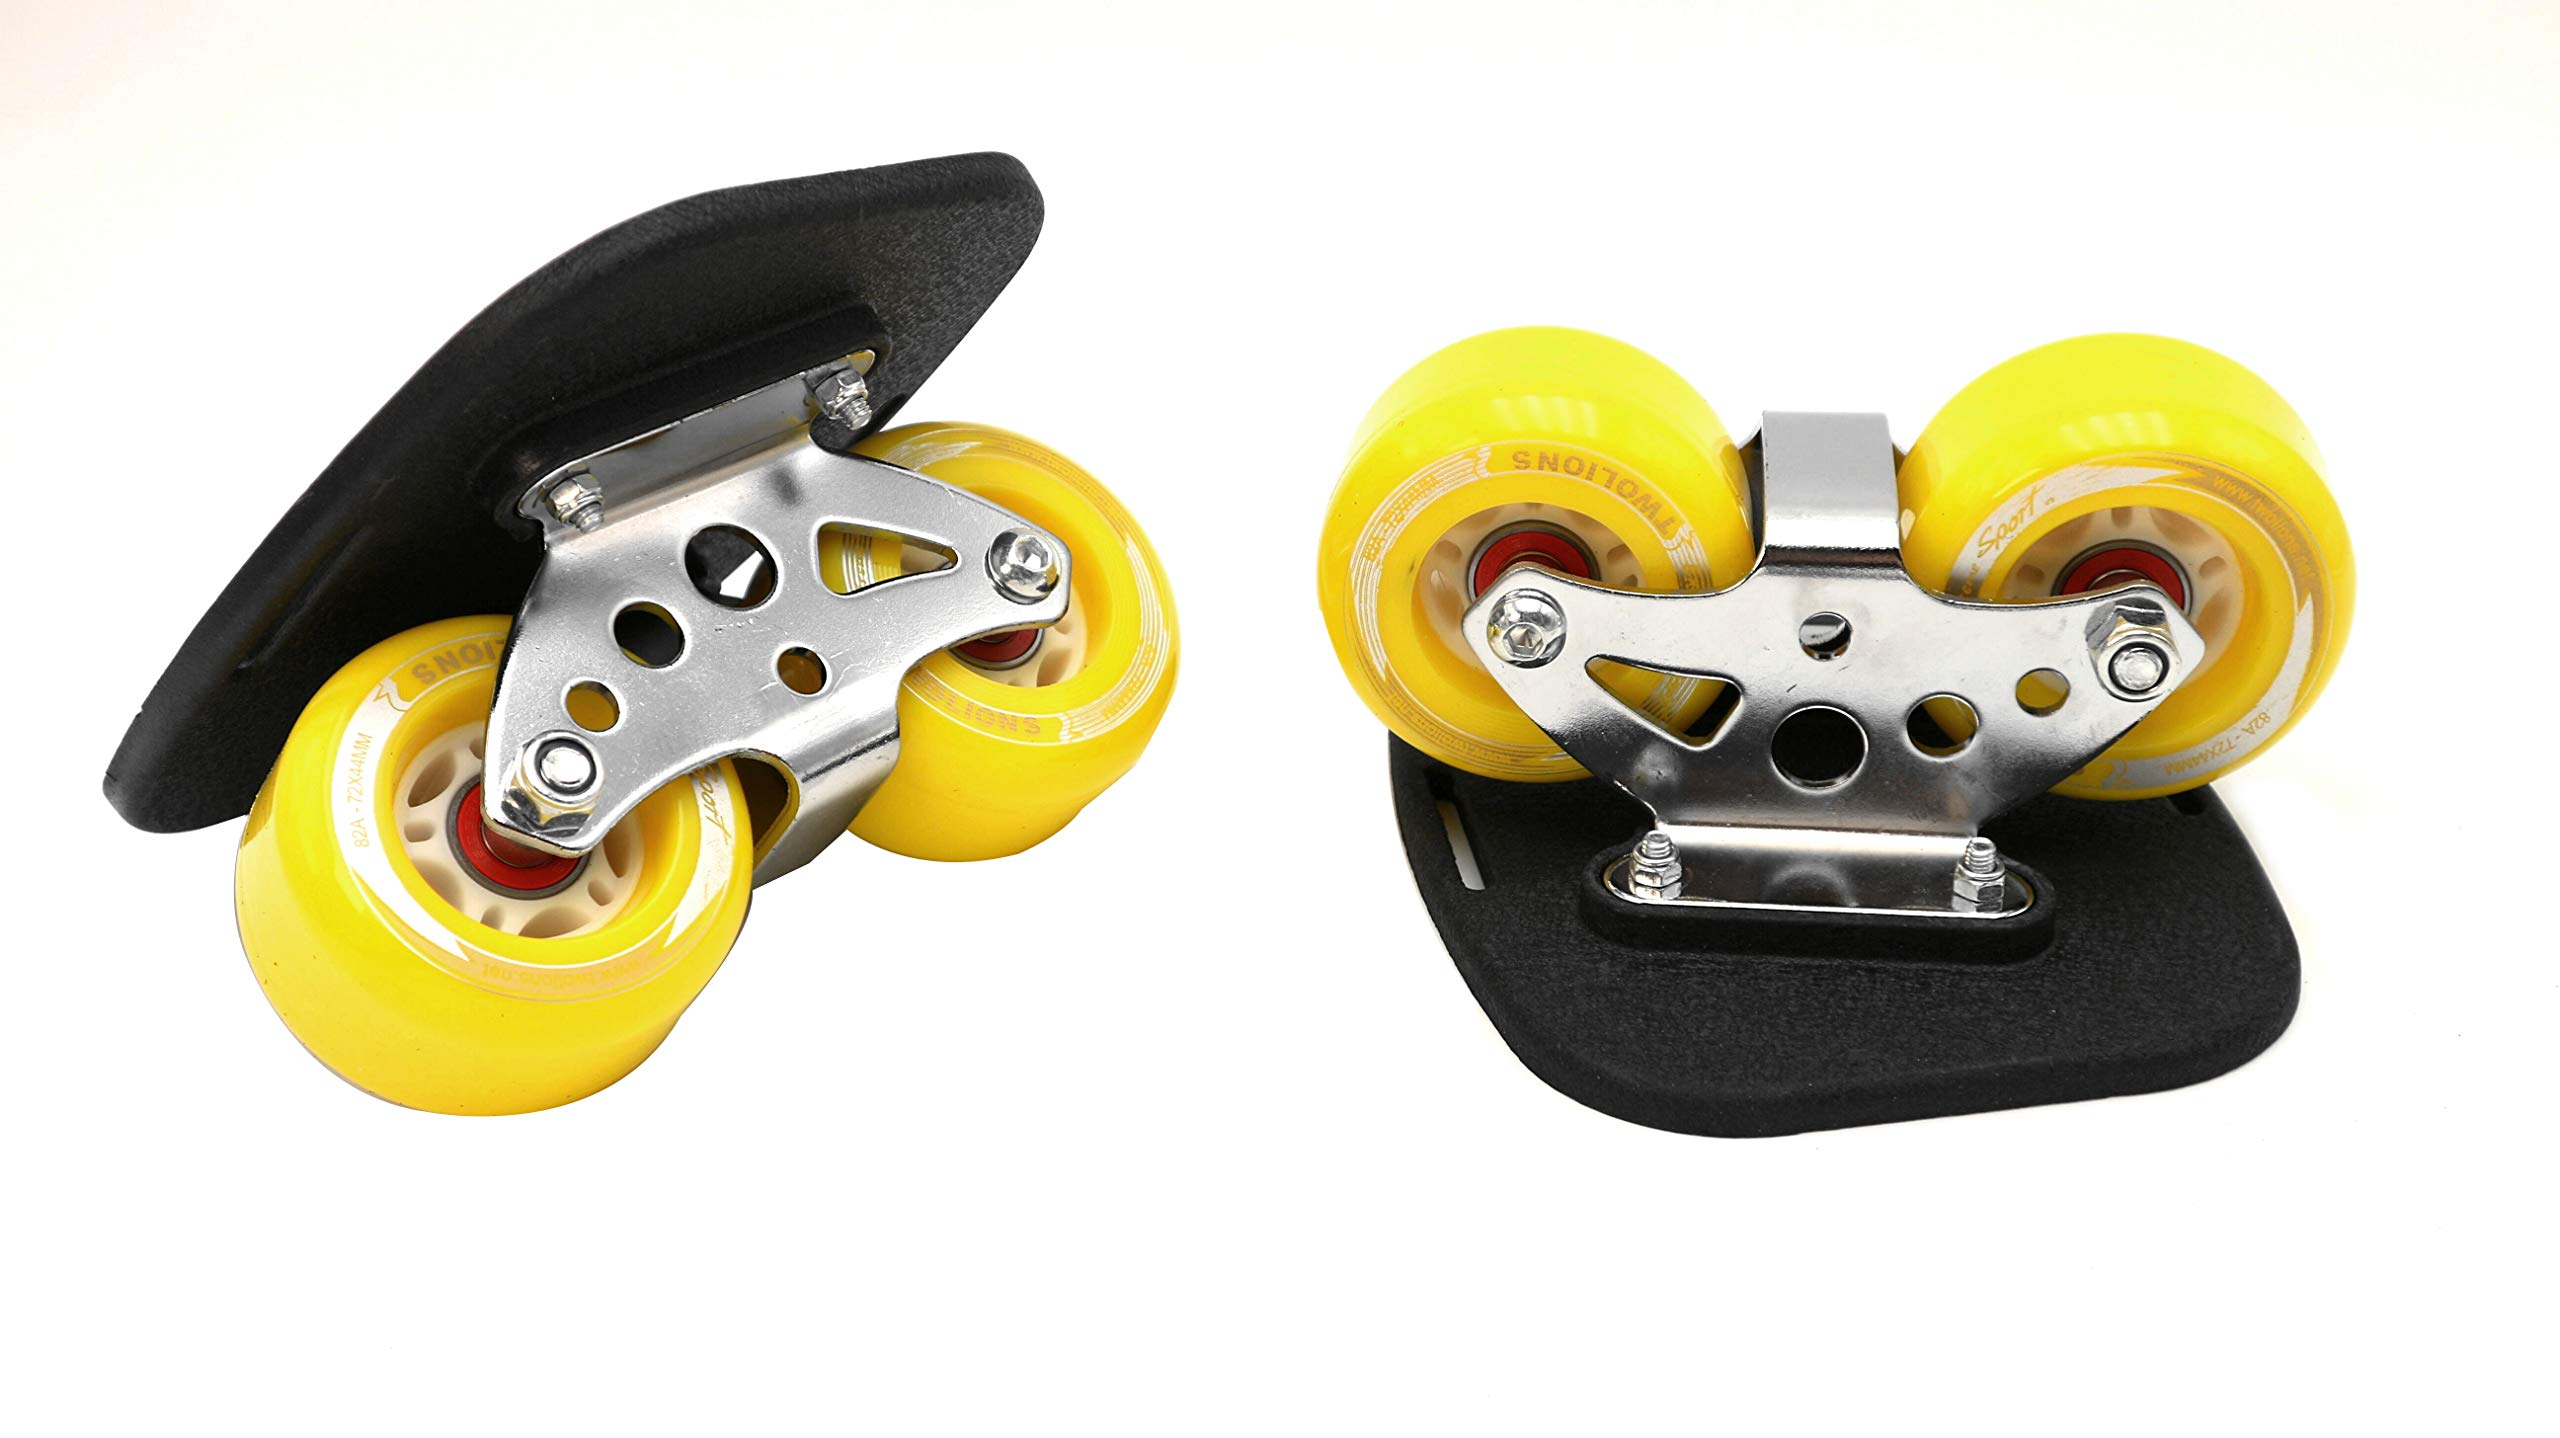 Roller Road Drift Skates Plate Pro Skates Anti-Slip Board Portable Split Skateboard All-in-one Aluminum Alloy with PU Wheels(Yellow) by Smartuan (Image #5)